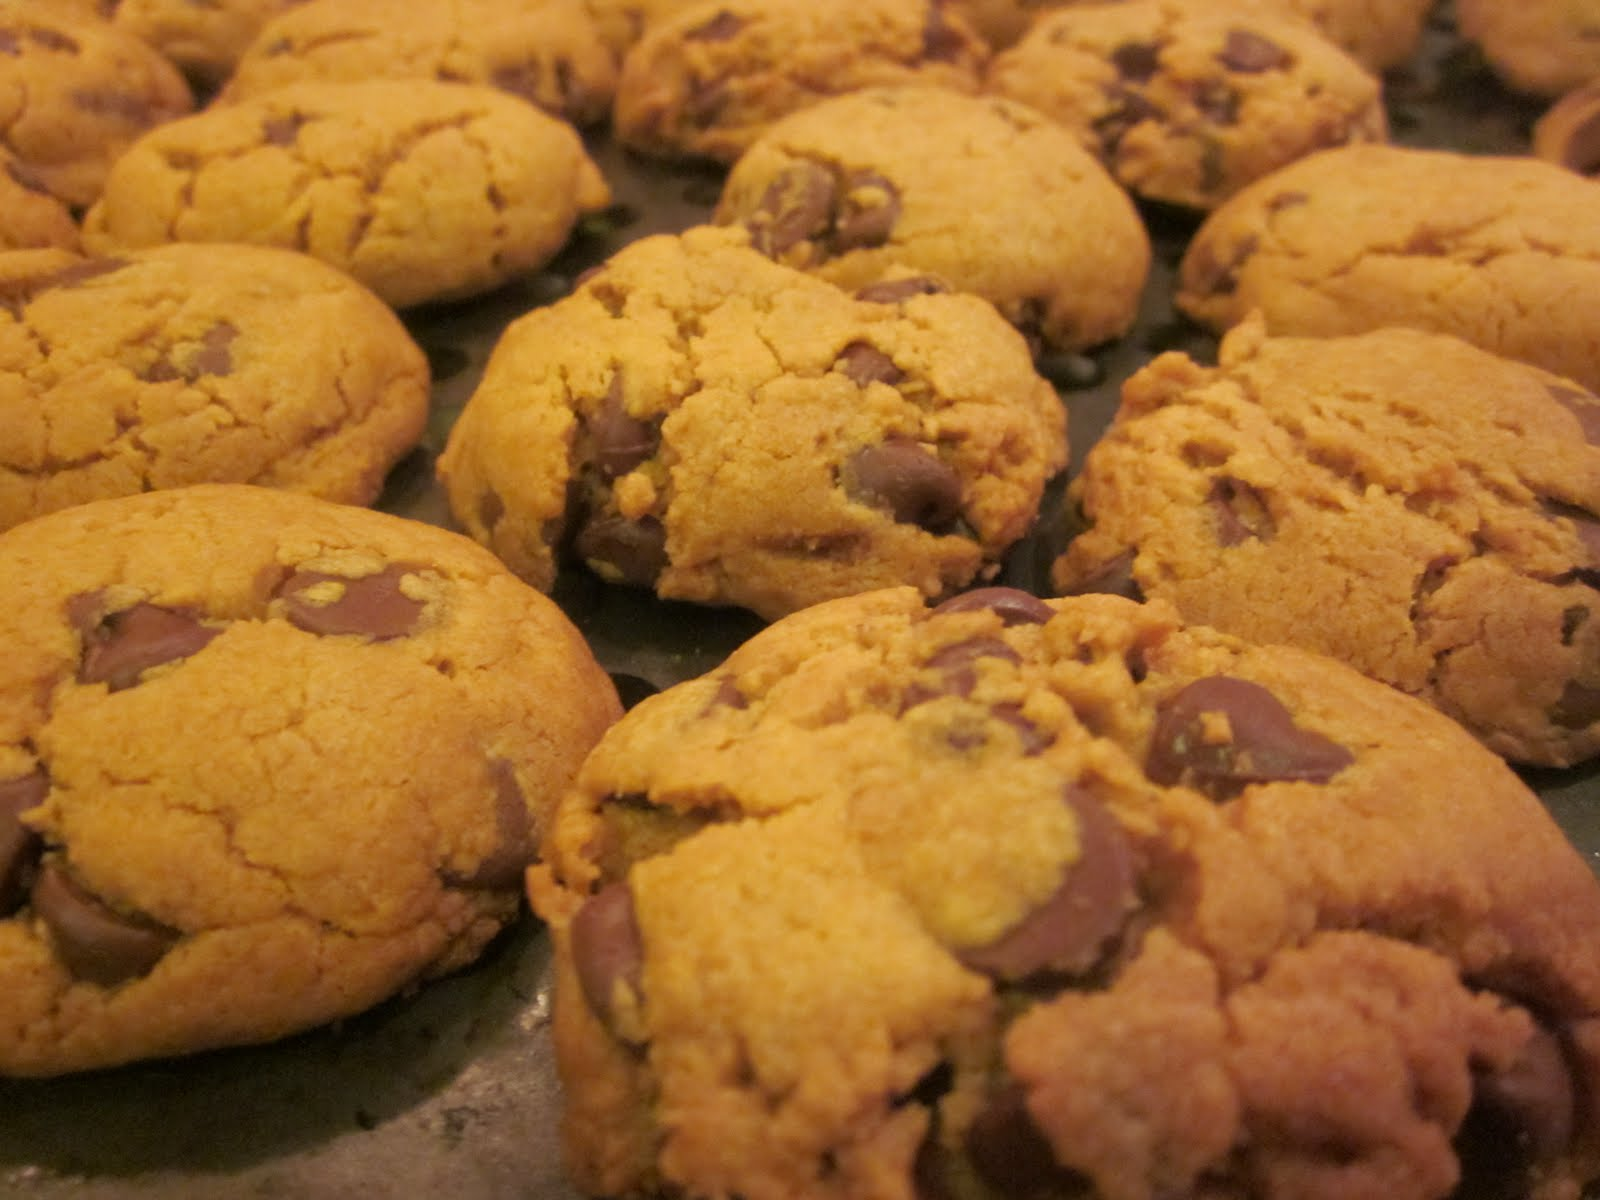 ... and sweet.: Passover Flourless Peanut Butter Chocolate Chip Cookies